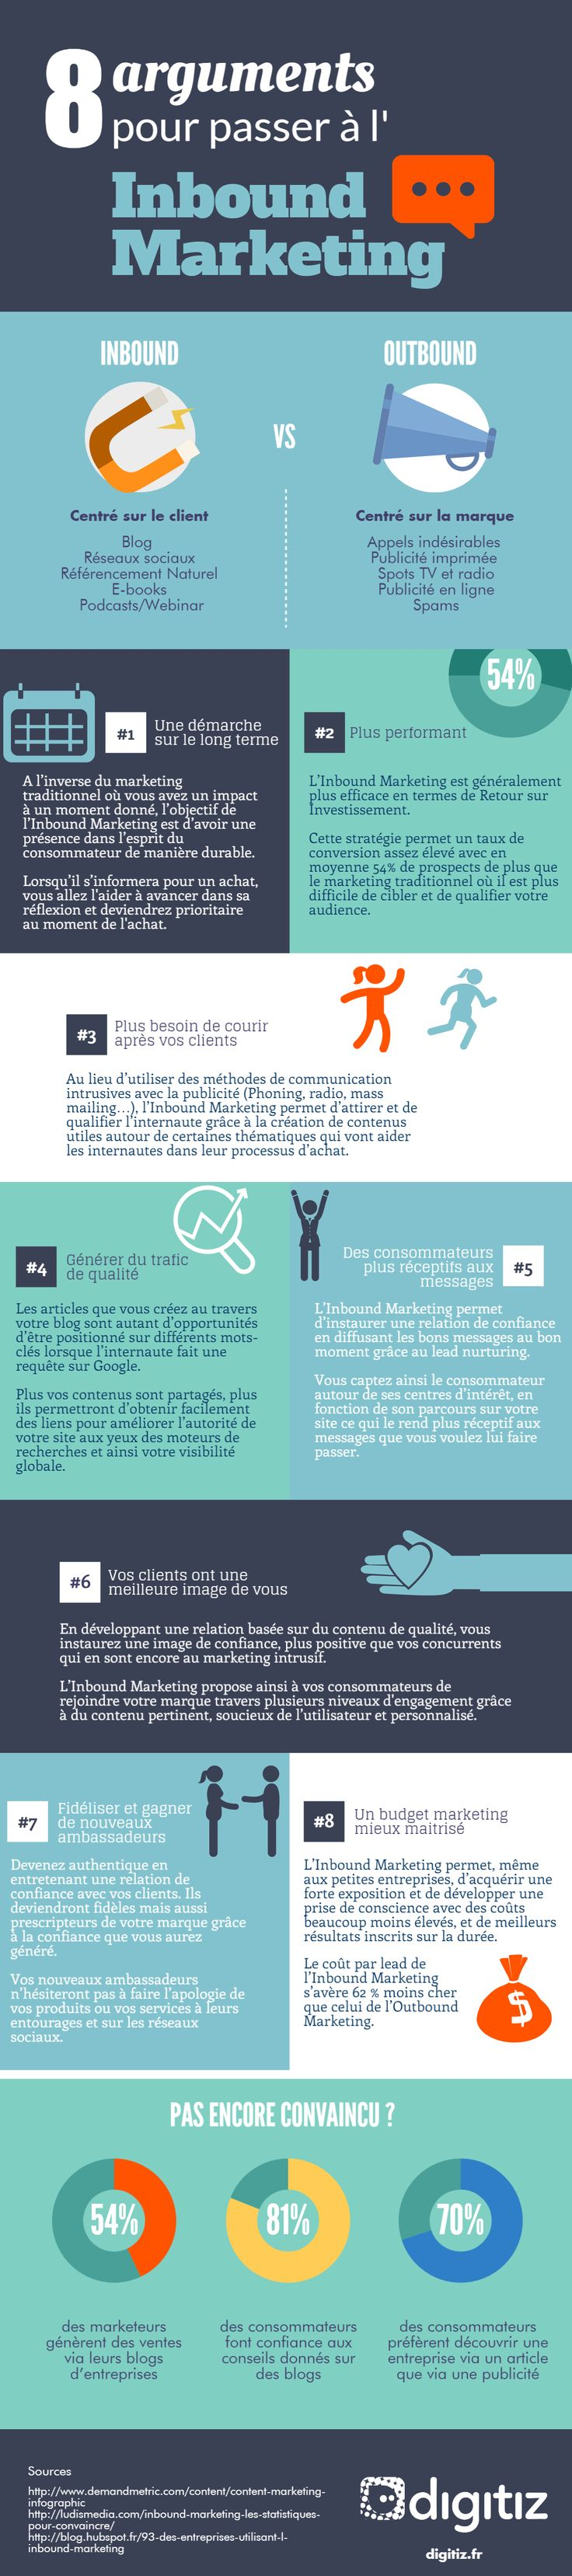 [Infographie] 8 arguments pour vous convaincre de passer à l'Inbound Marketing Infographie Inbound Marketing